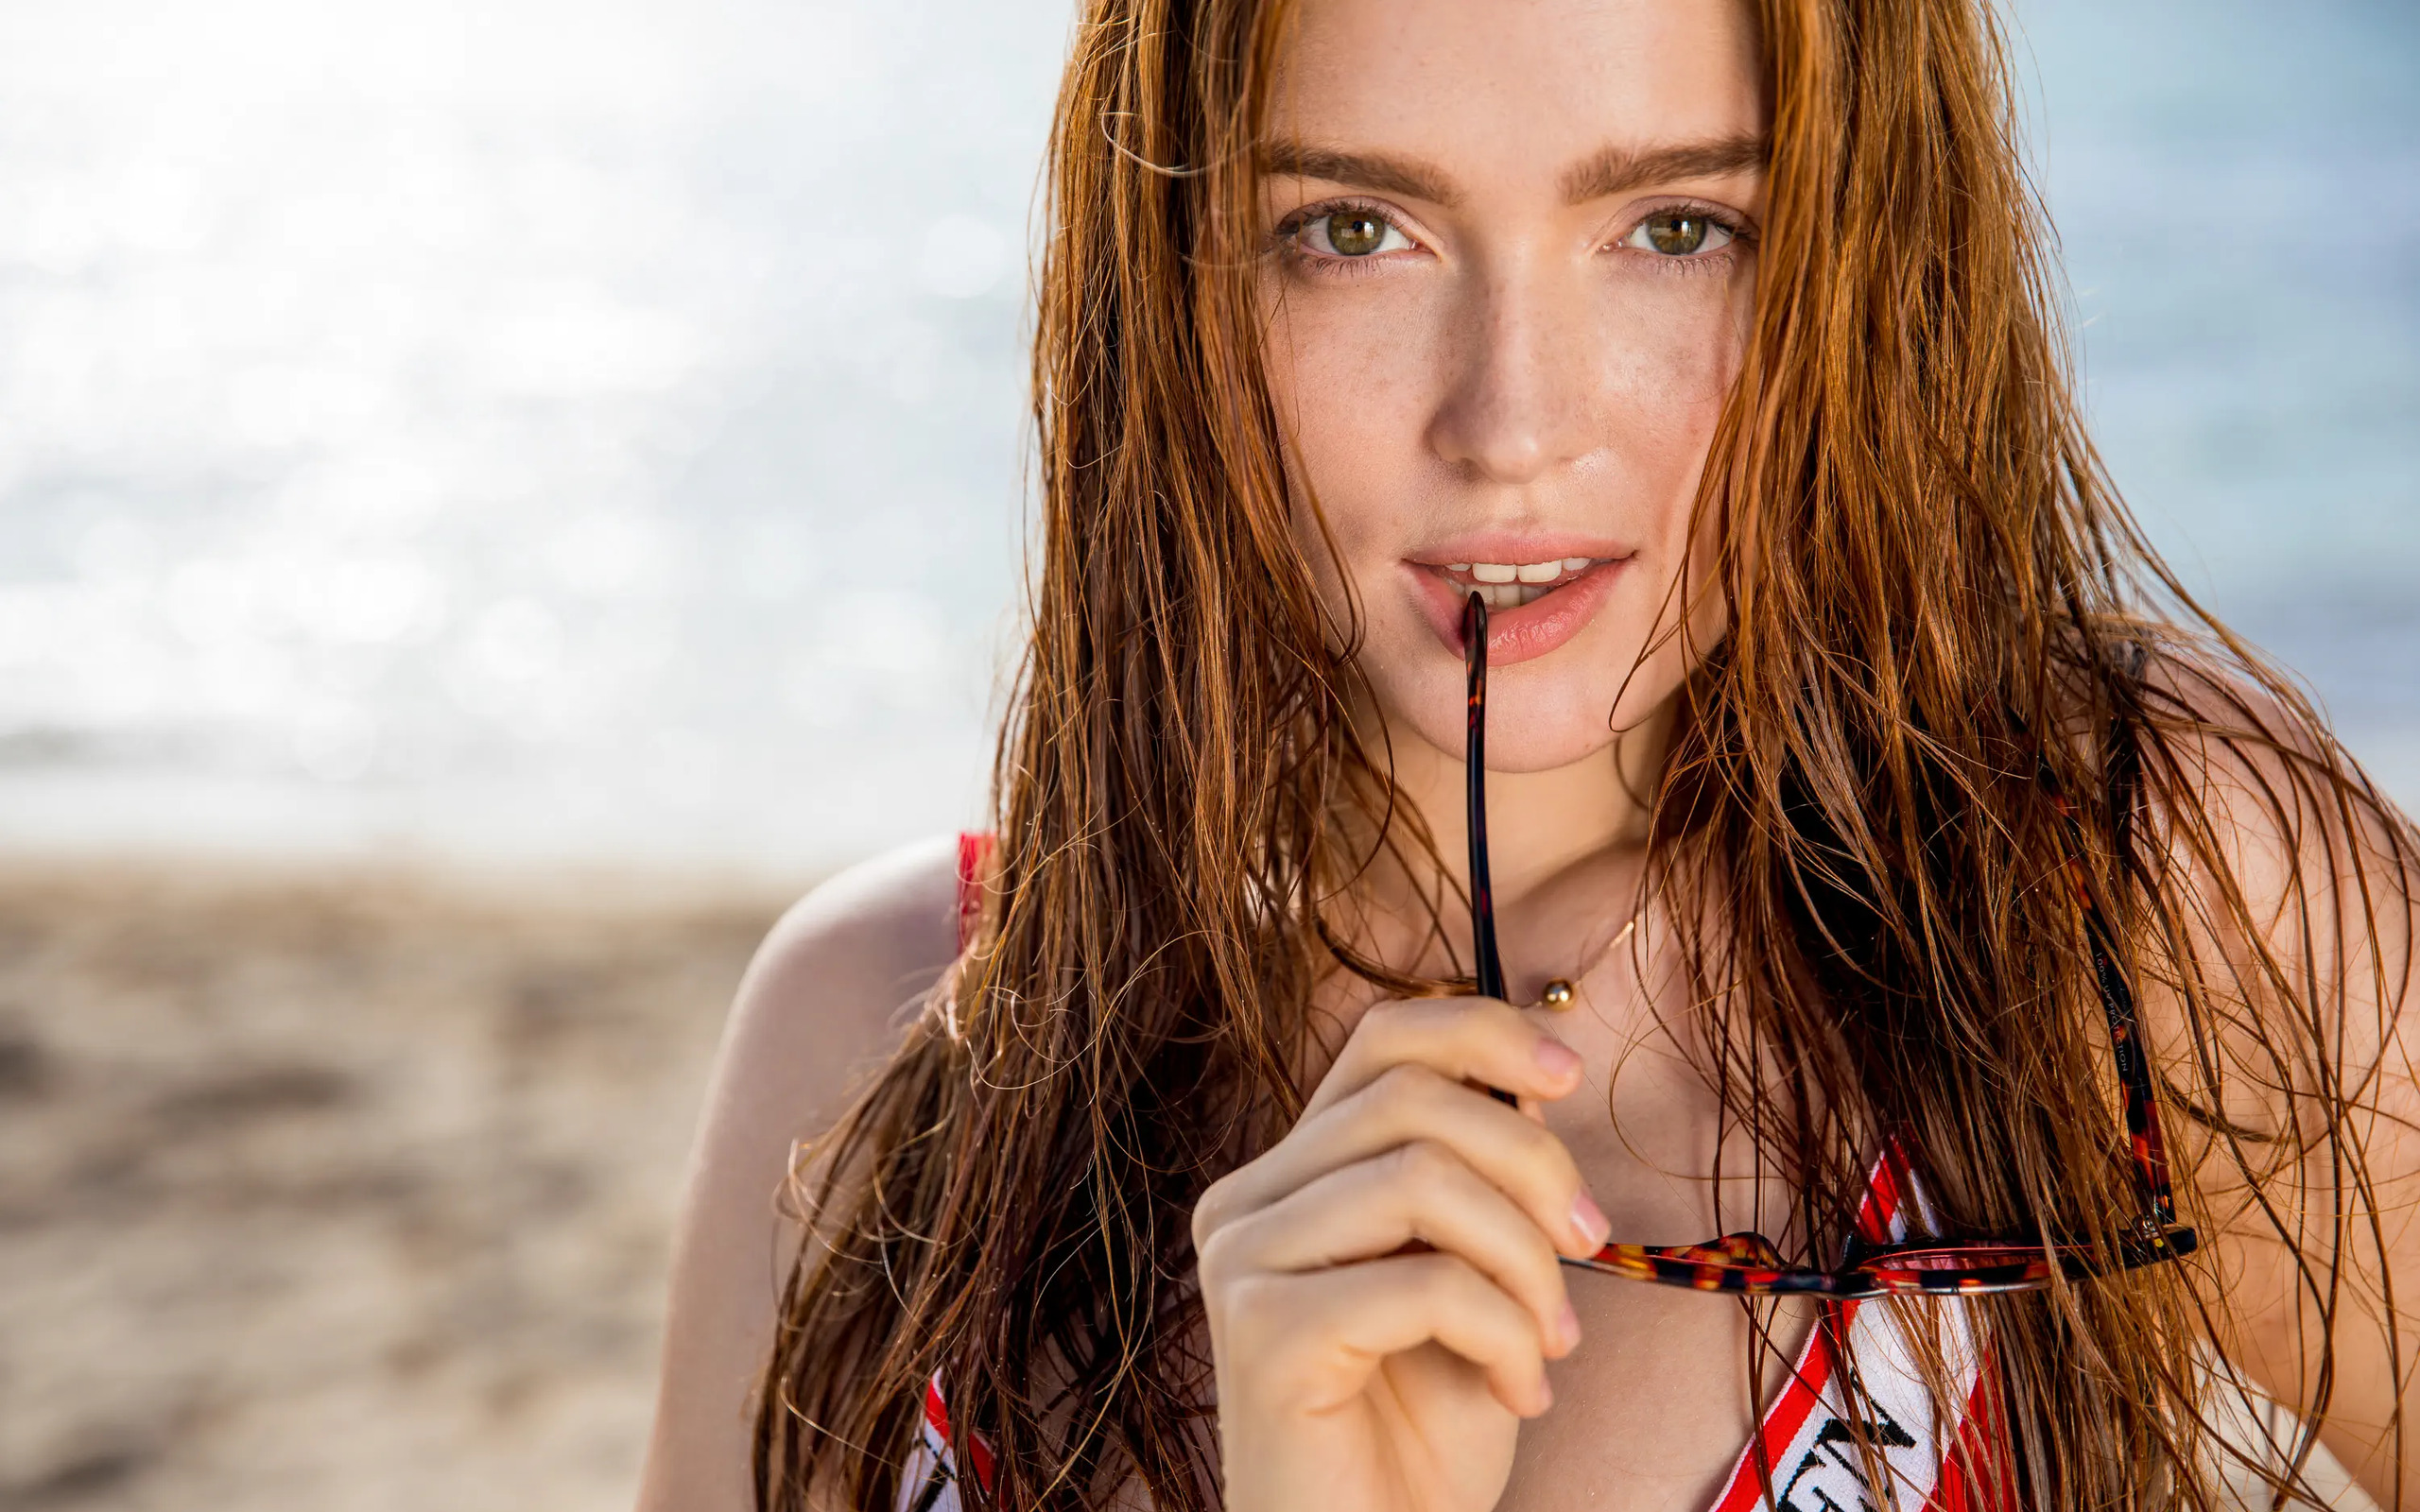 People 2560x1600 Jia Lissa redhead biting looking at viewer